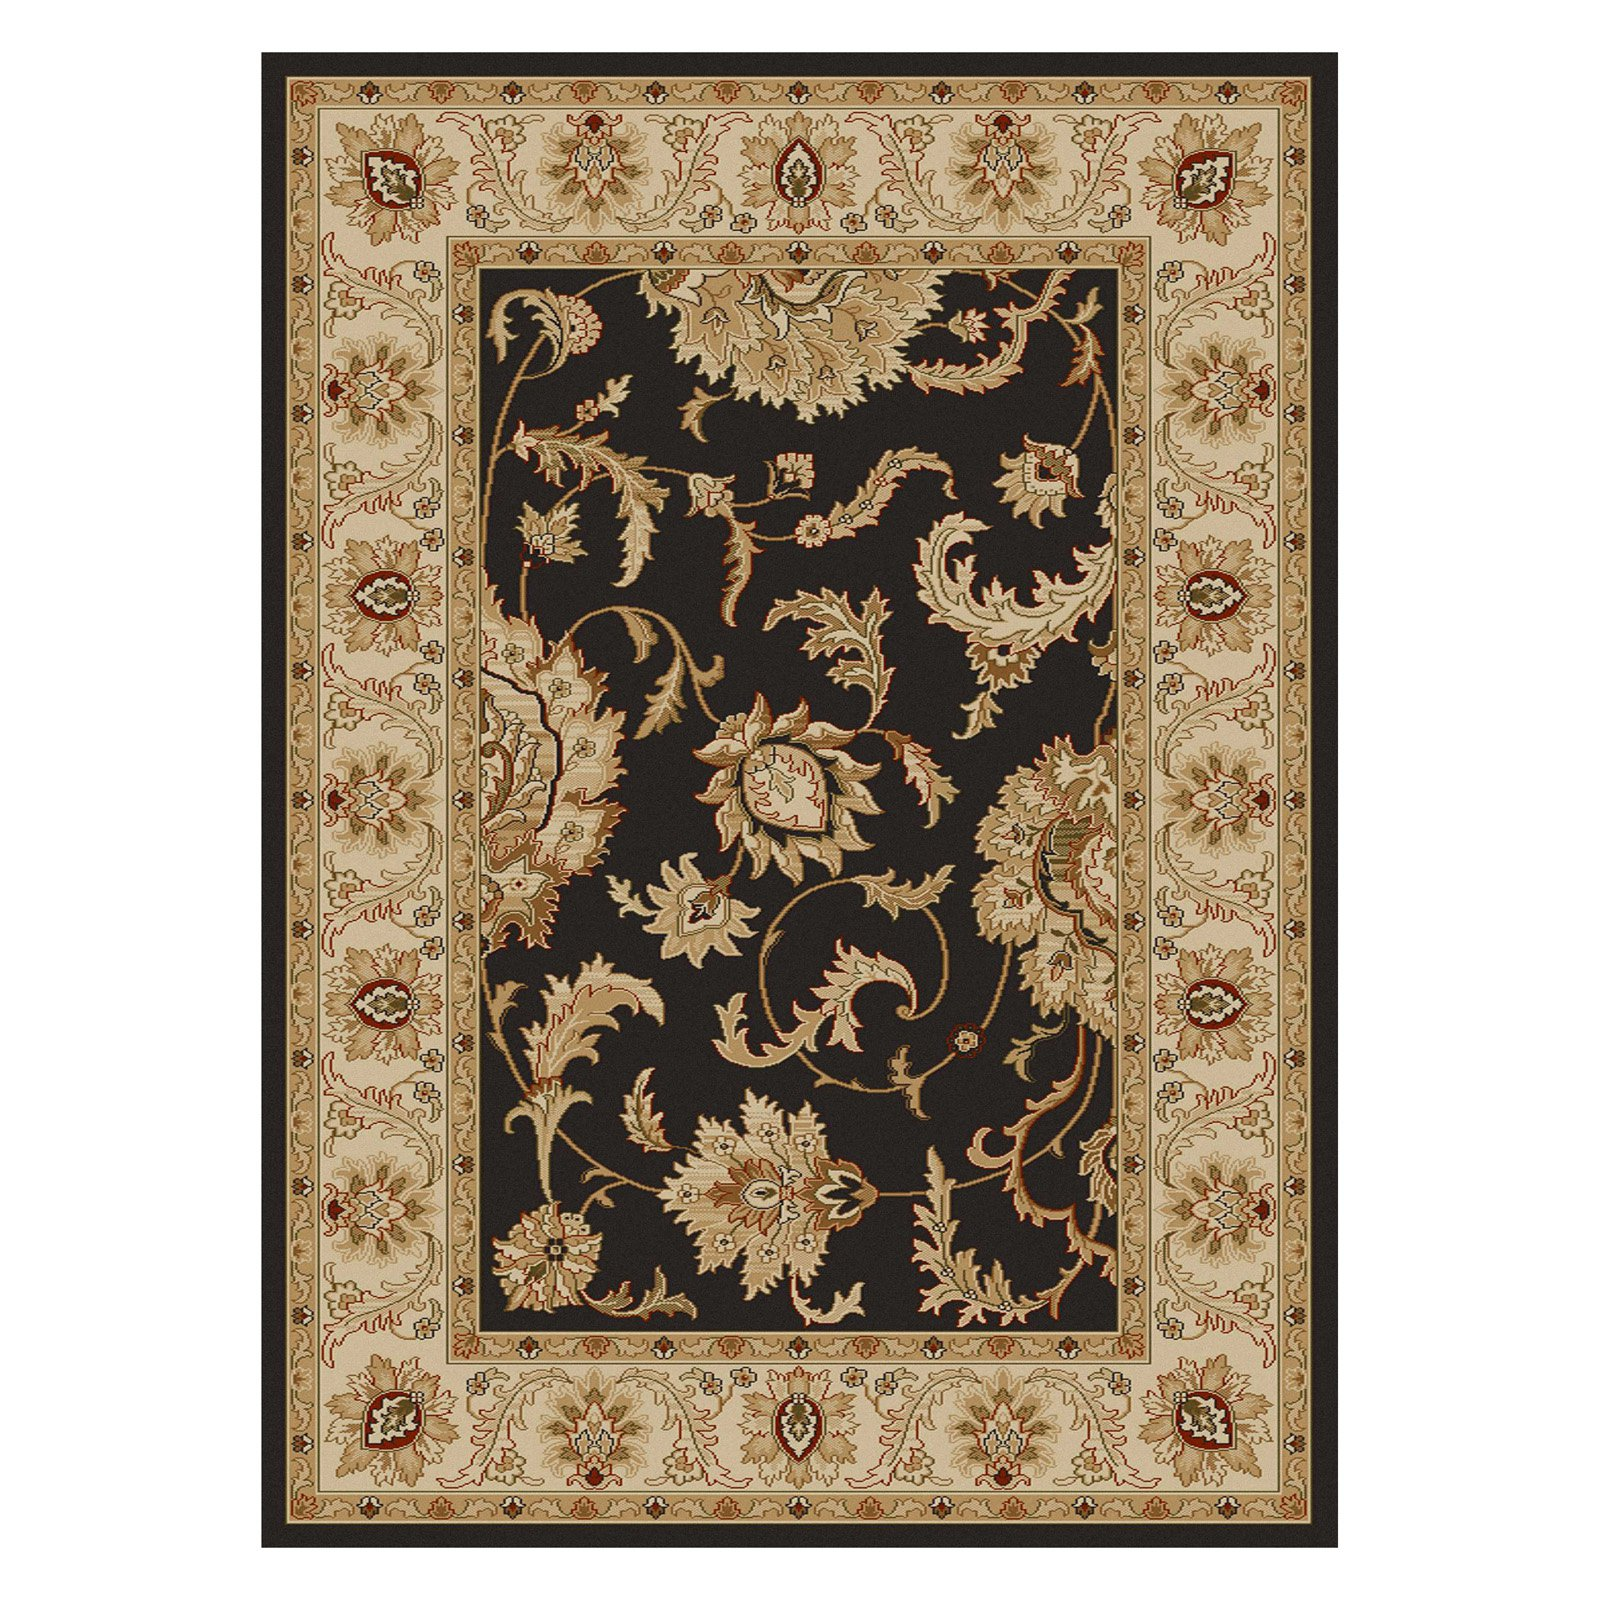 Radici USA Como 1621 Area Rug - Brown